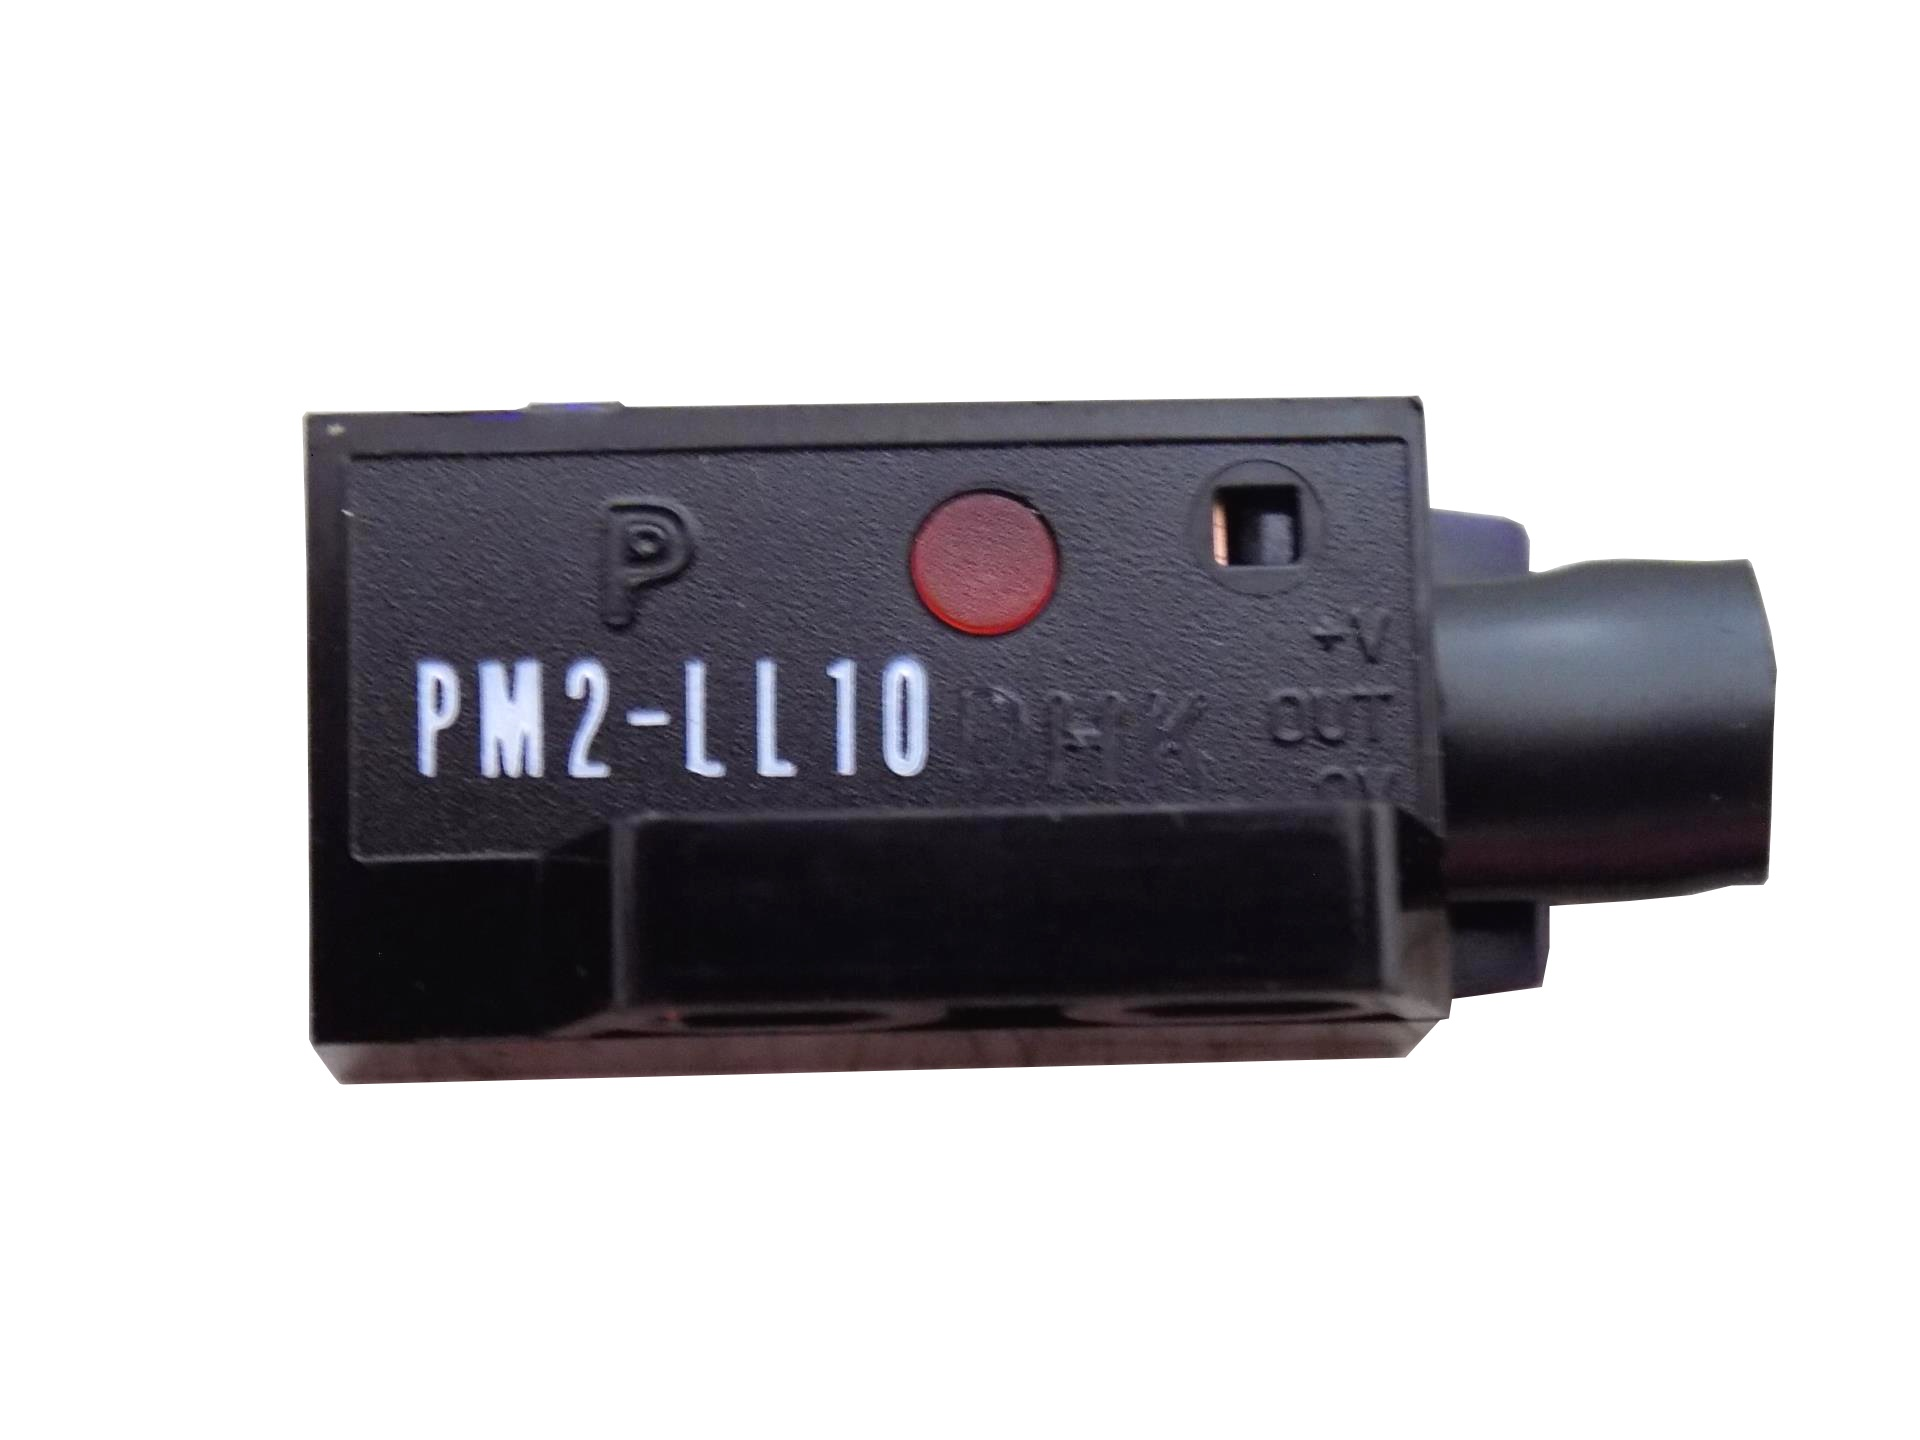 PM2-LL10 | Panasonic SUNX | Convergent Reflective Micro Photoelectric Sensor PM2 *Ready Stock - 10 UNIT ONLY*